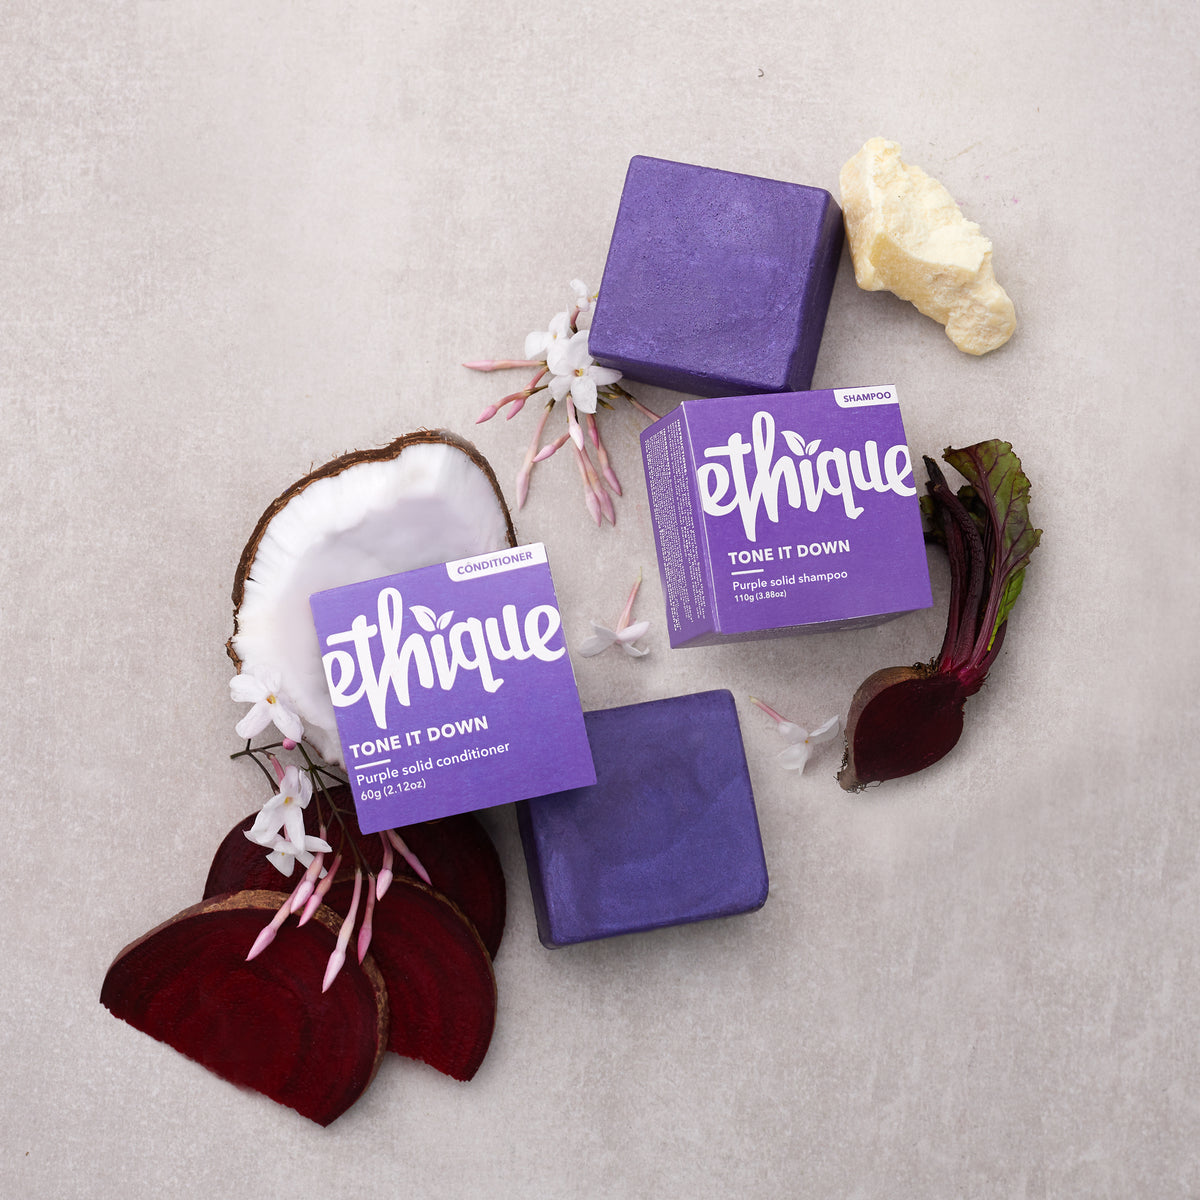 Tone it Down - Ethique Purple Shampoo & Conditioner - Neat Natural Products NZ